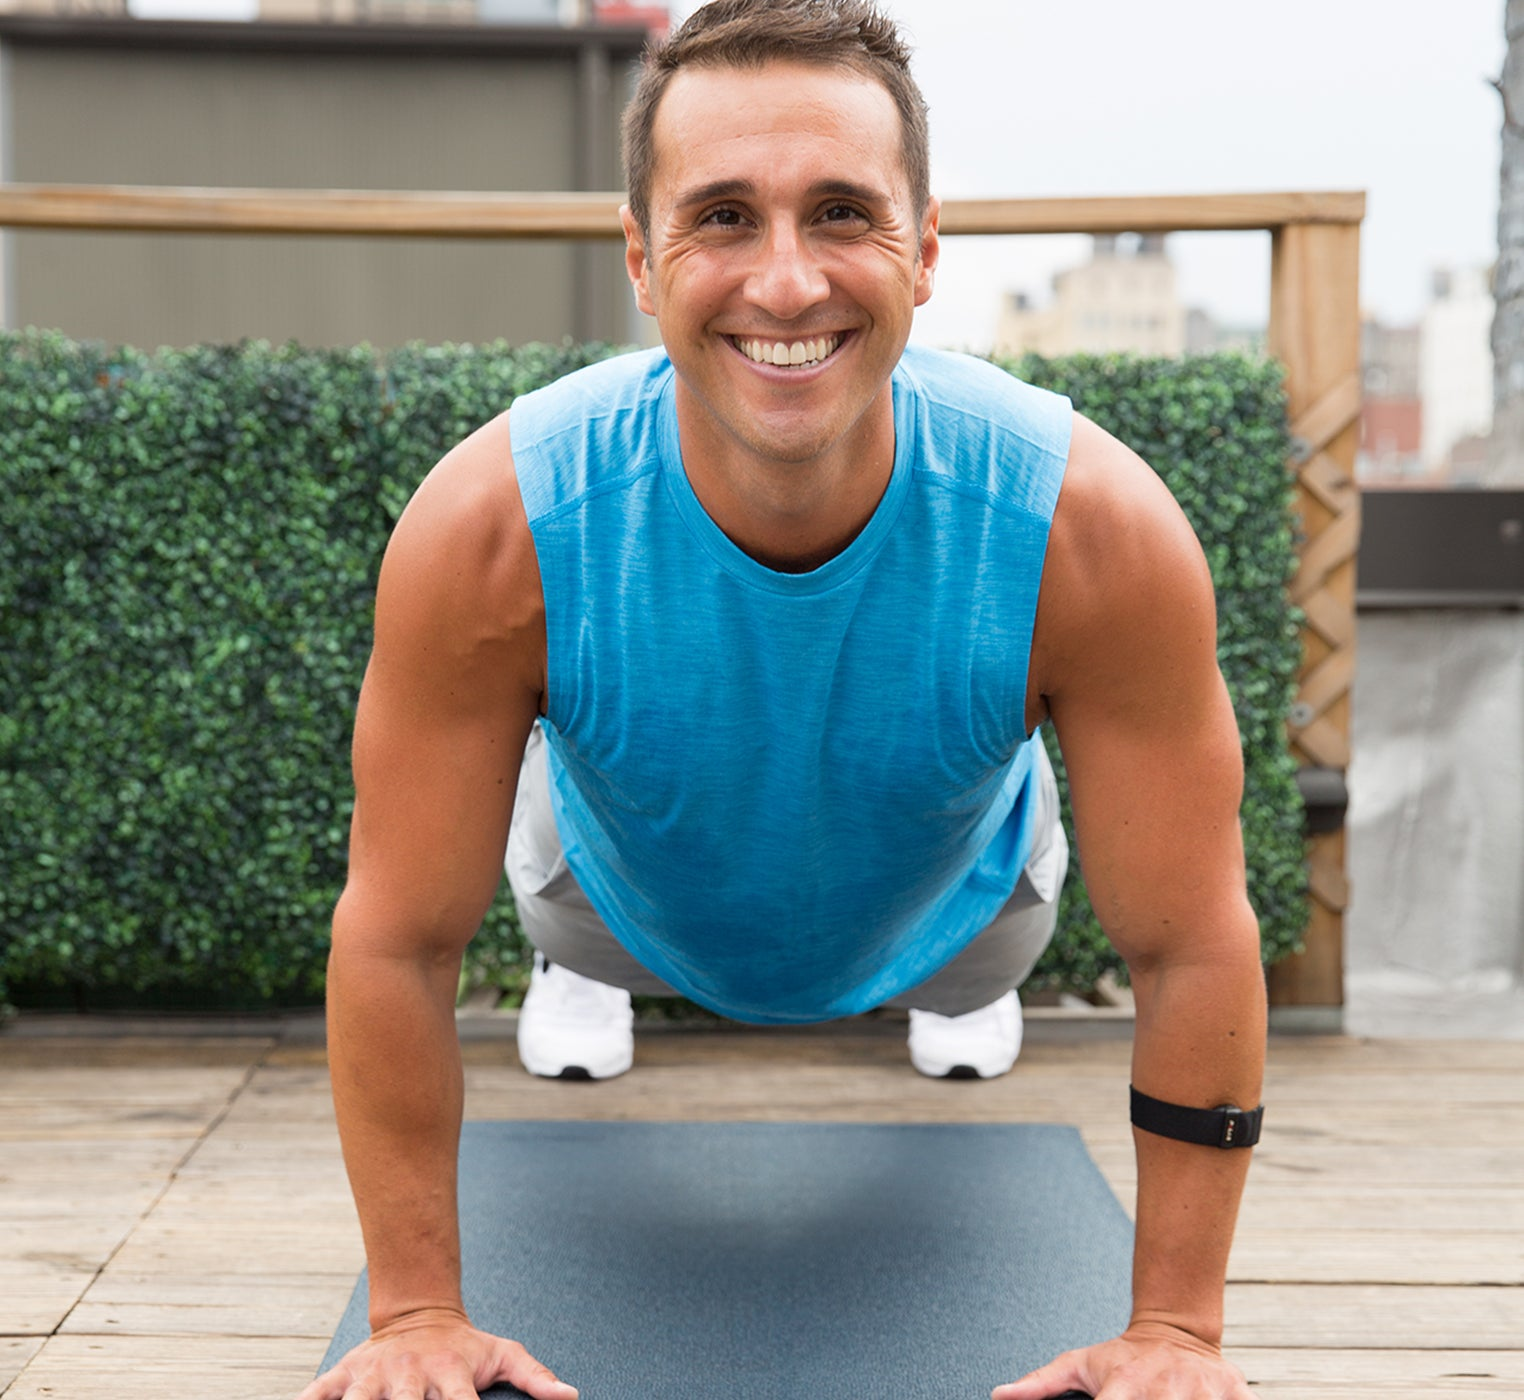 Man in plank position smiling